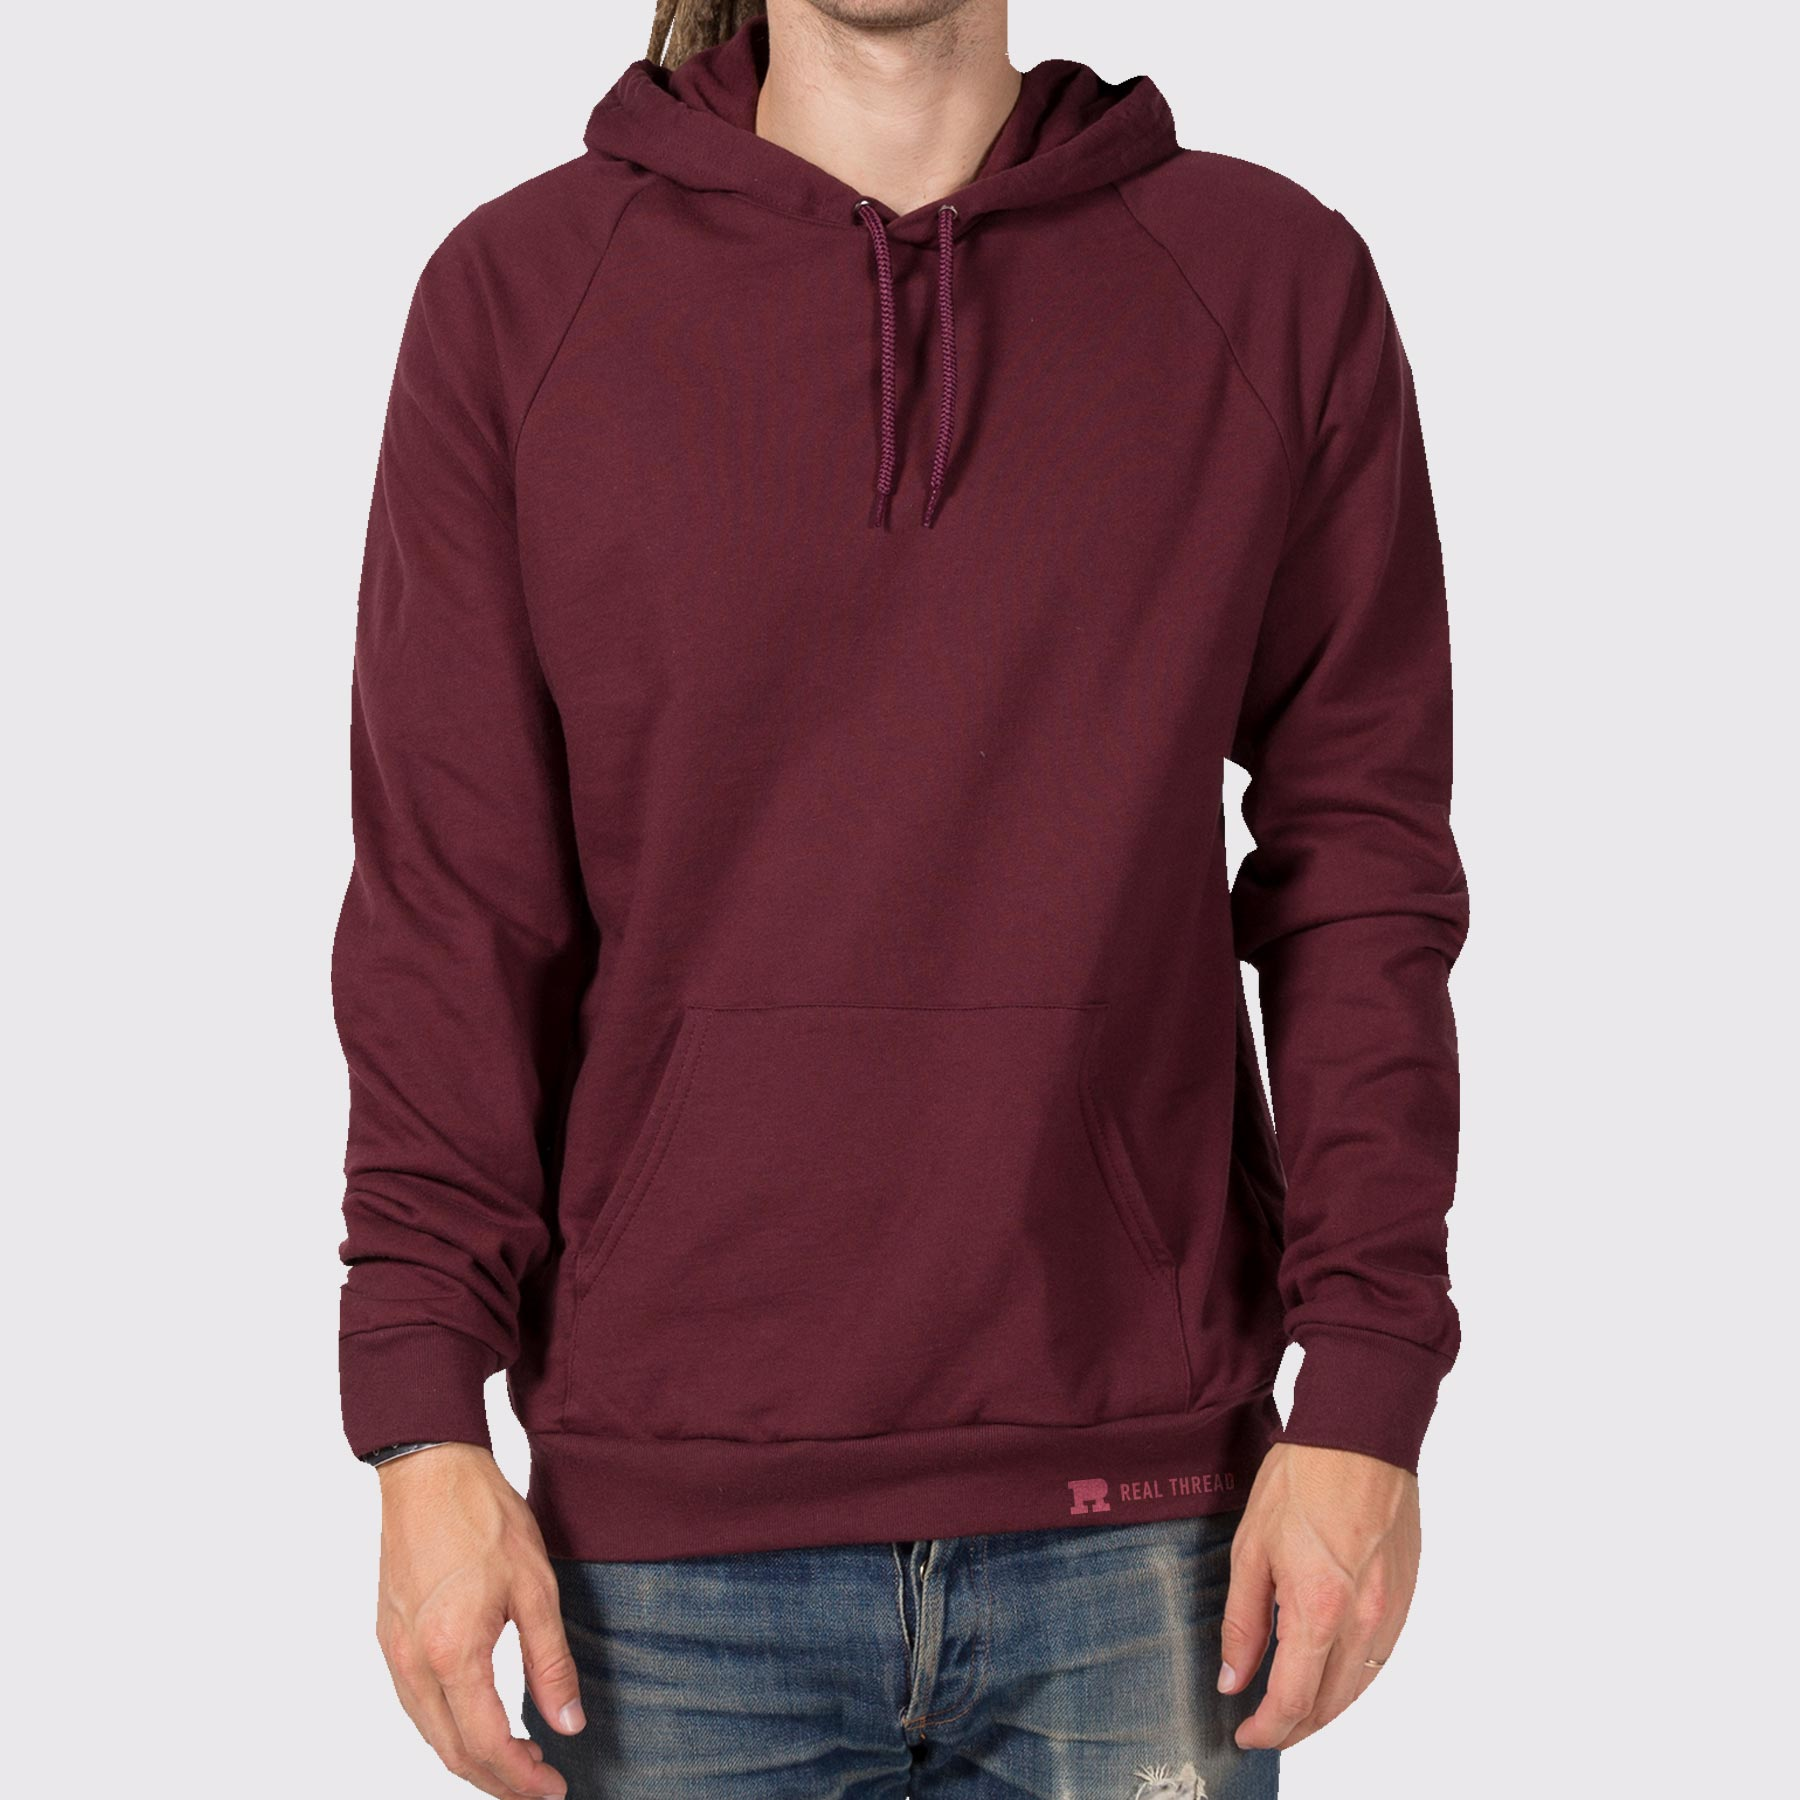 American Apparel 5495 Hoodie Template Modeled